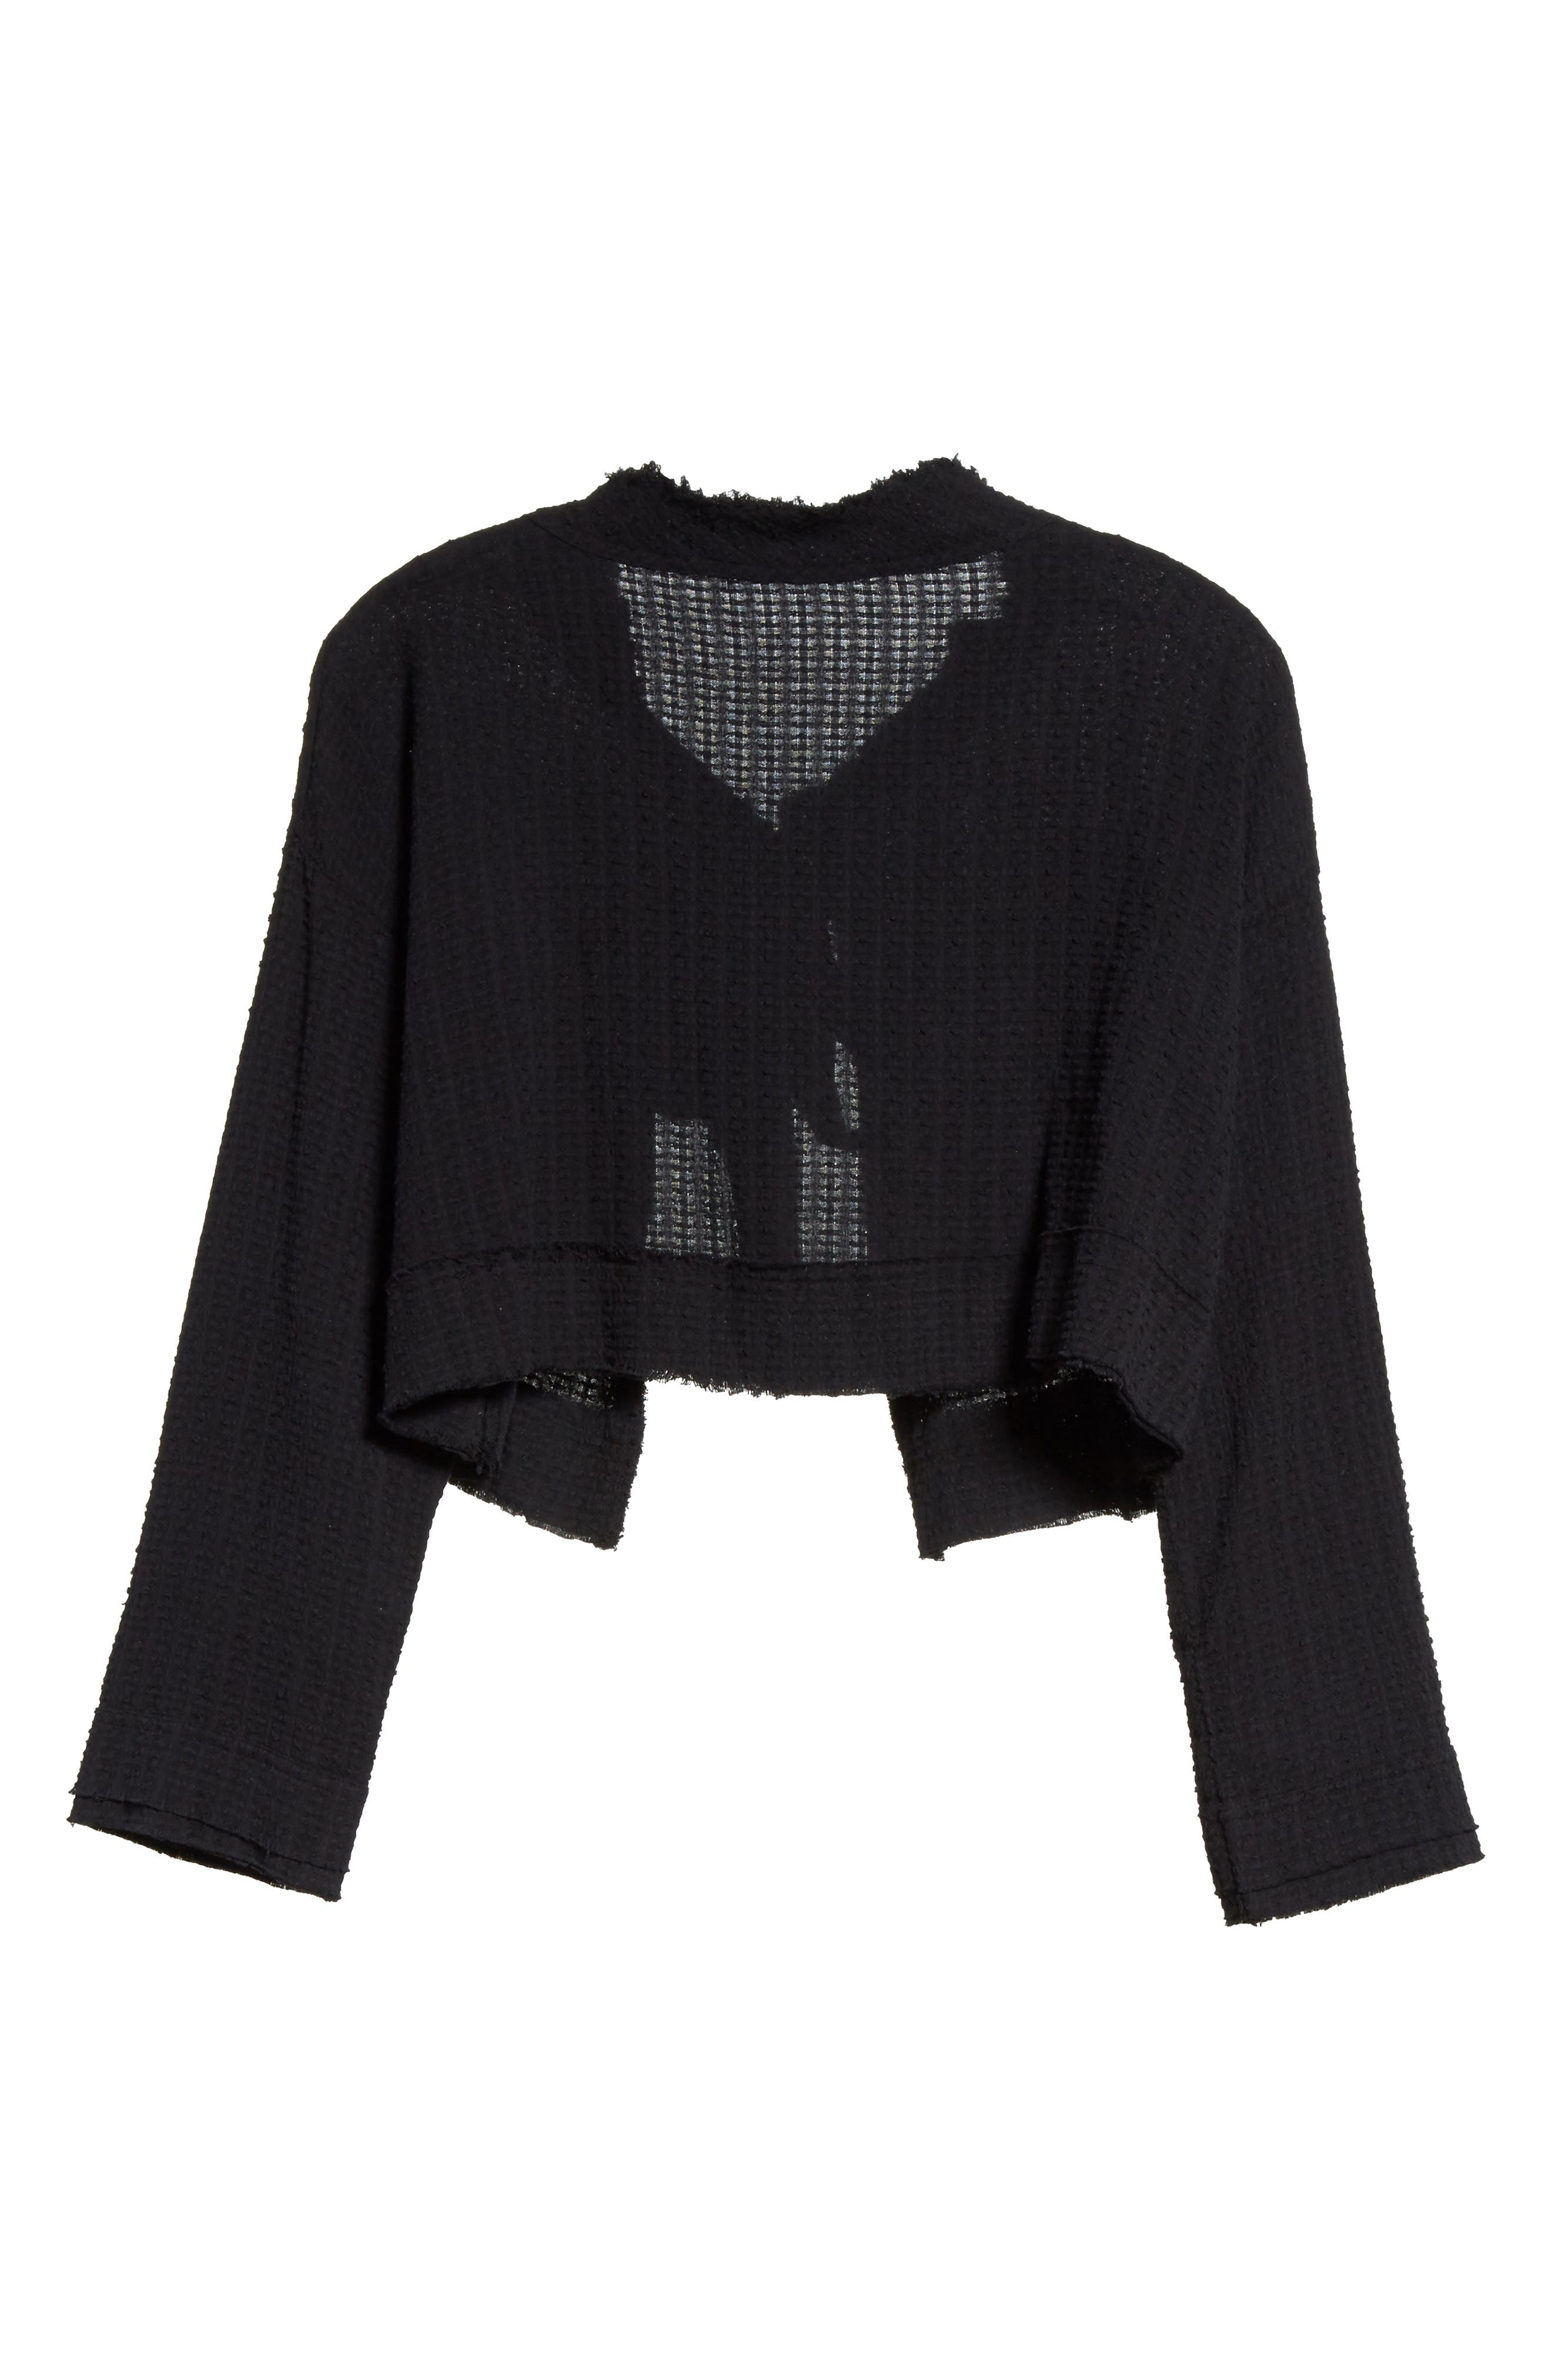 Waking in Hueco Crop Sweater,                             Alternate thumbnail 6, color,                             001